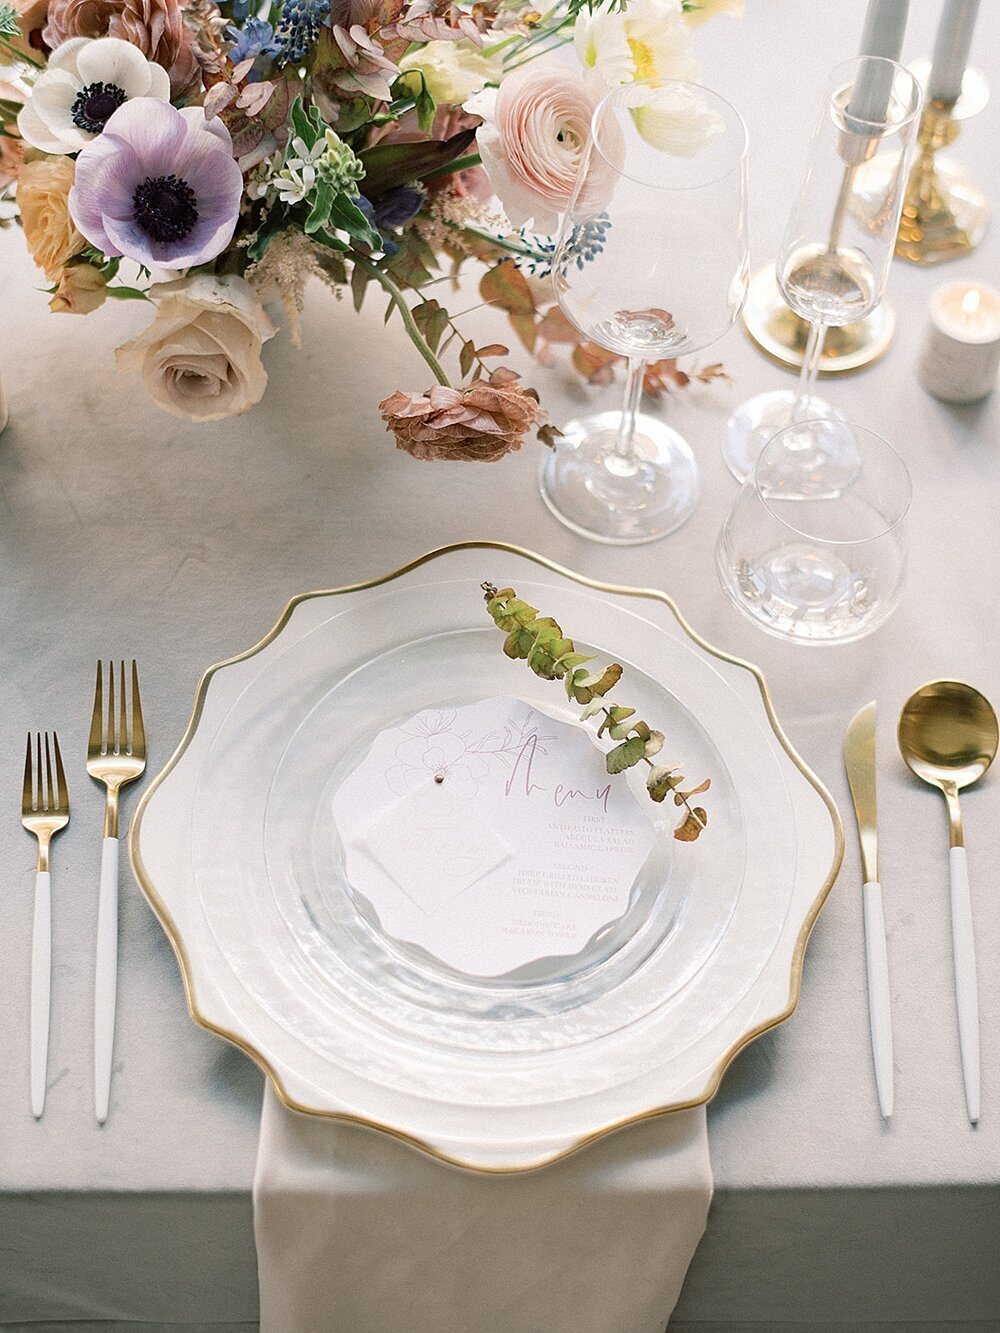 Modern-love-event-leigh-and-mitchell-modern-flatware-wedding-placesettings